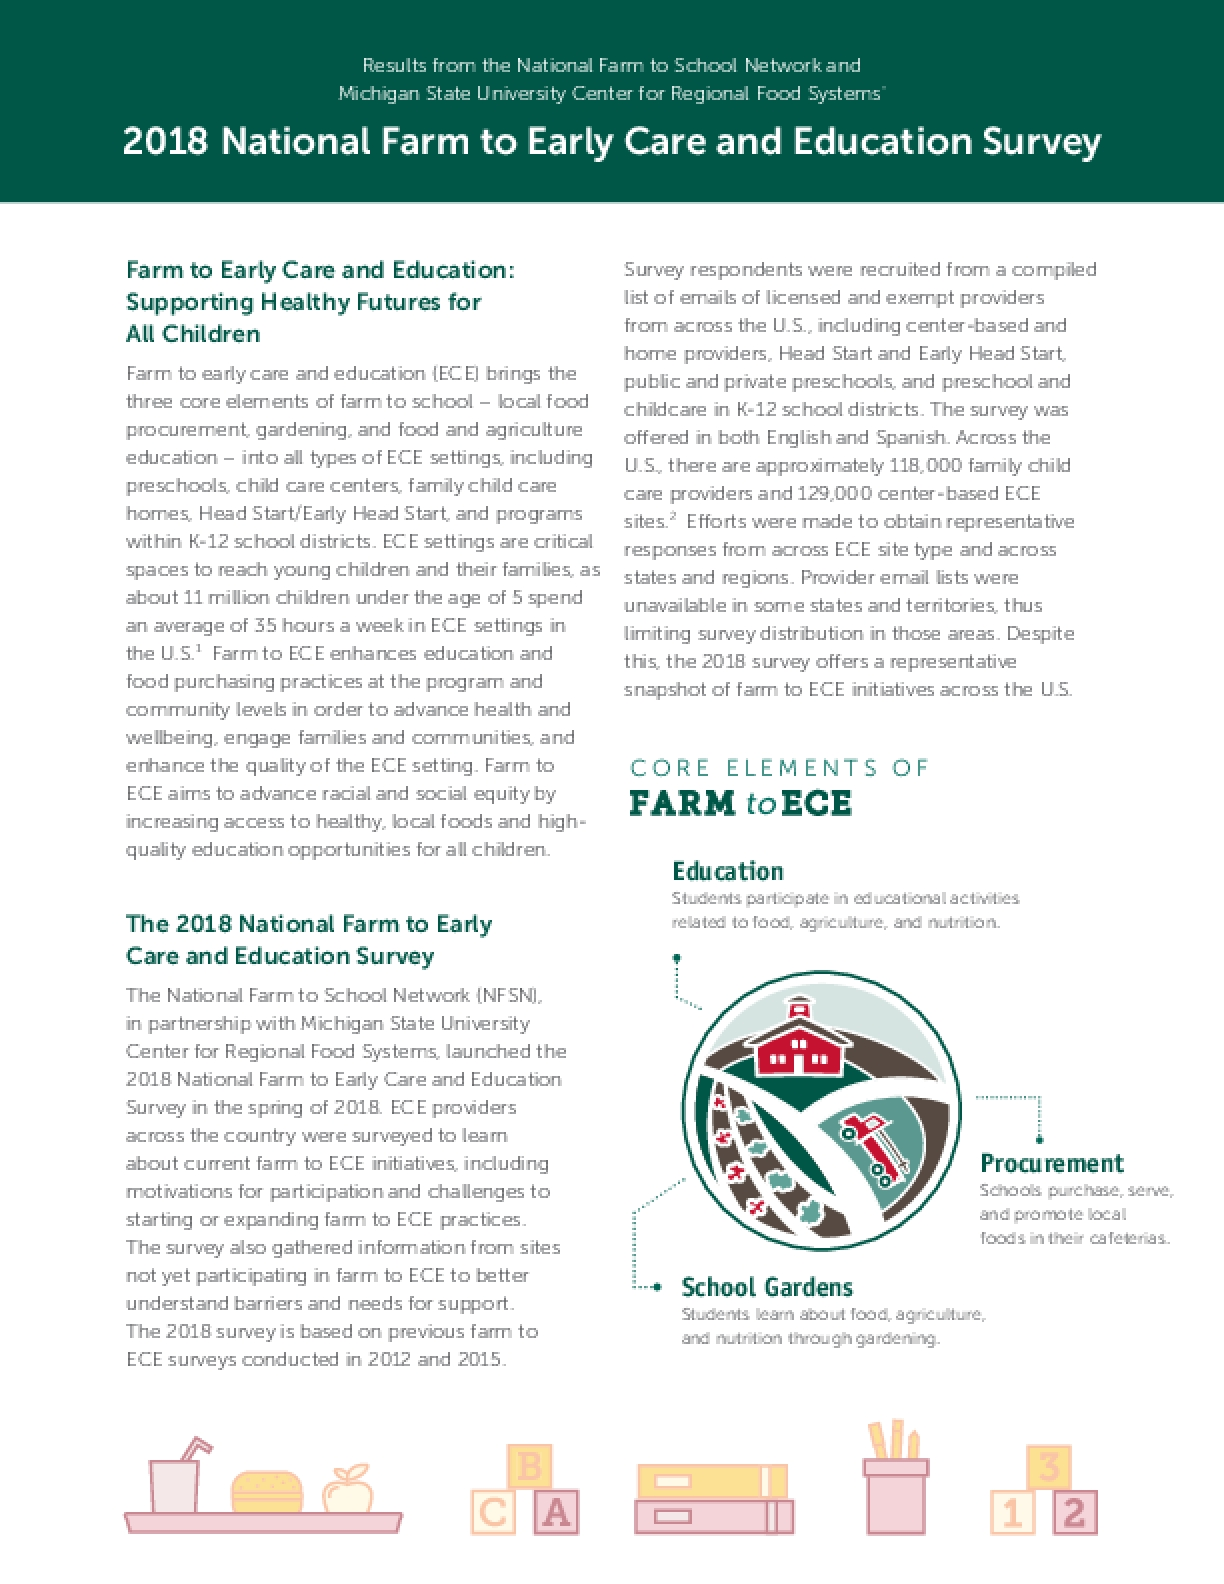 Results from the 2018 National Farm to Early Care and Education Survey (Fact Sheet)